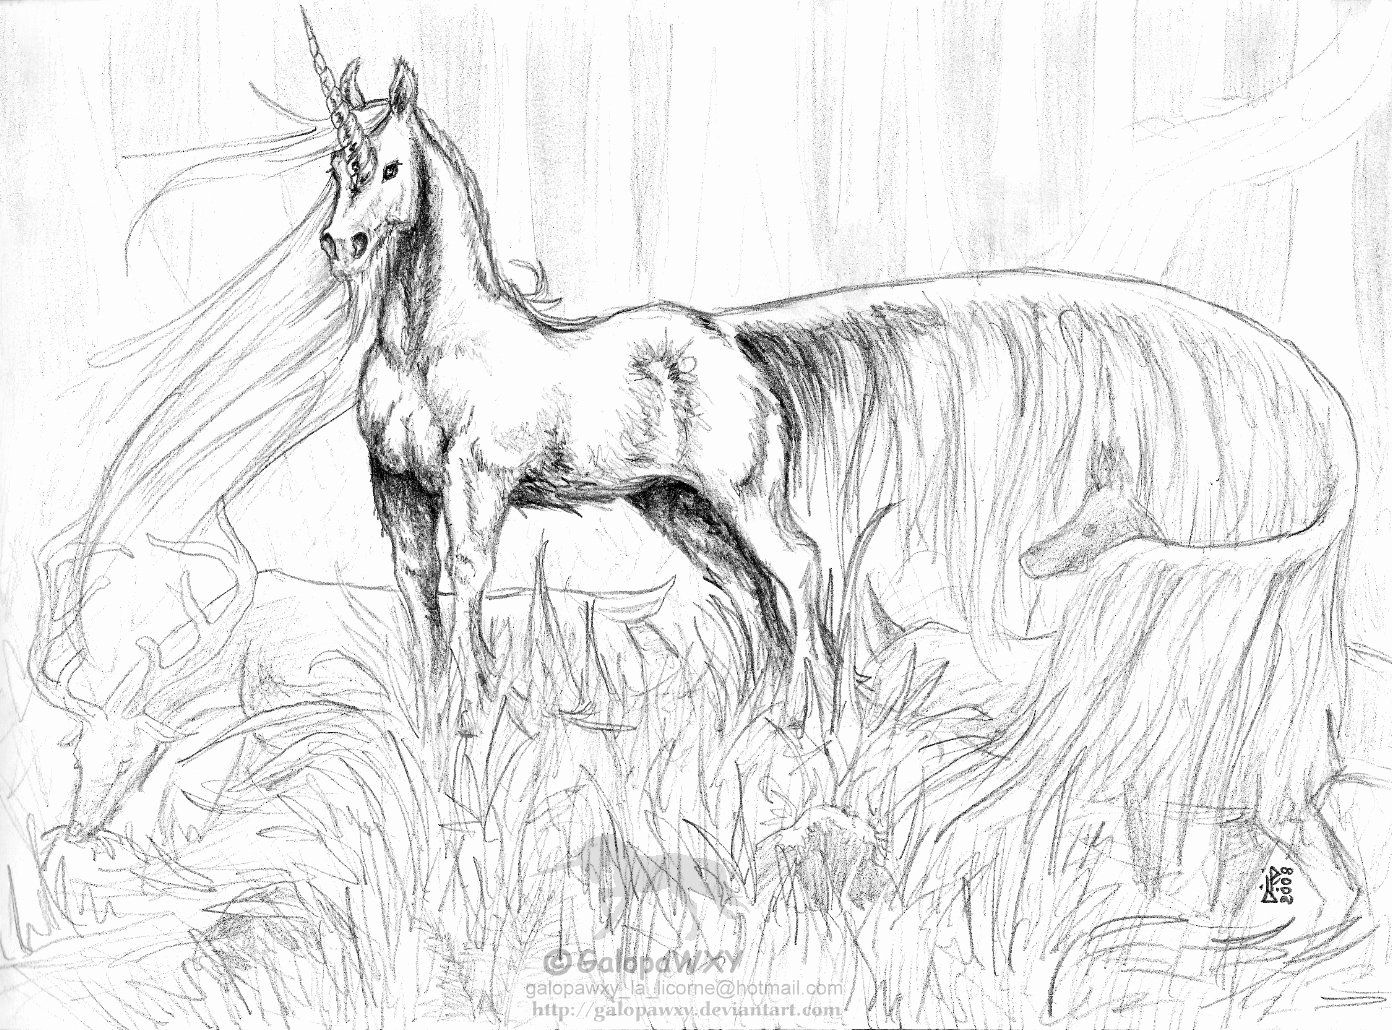 Horses Coloring Pages For Adults Awesome Unicorn Coloring Pages In 2020 Horse Coloring Pages Unicorn Coloring Pages Animal Coloring Books